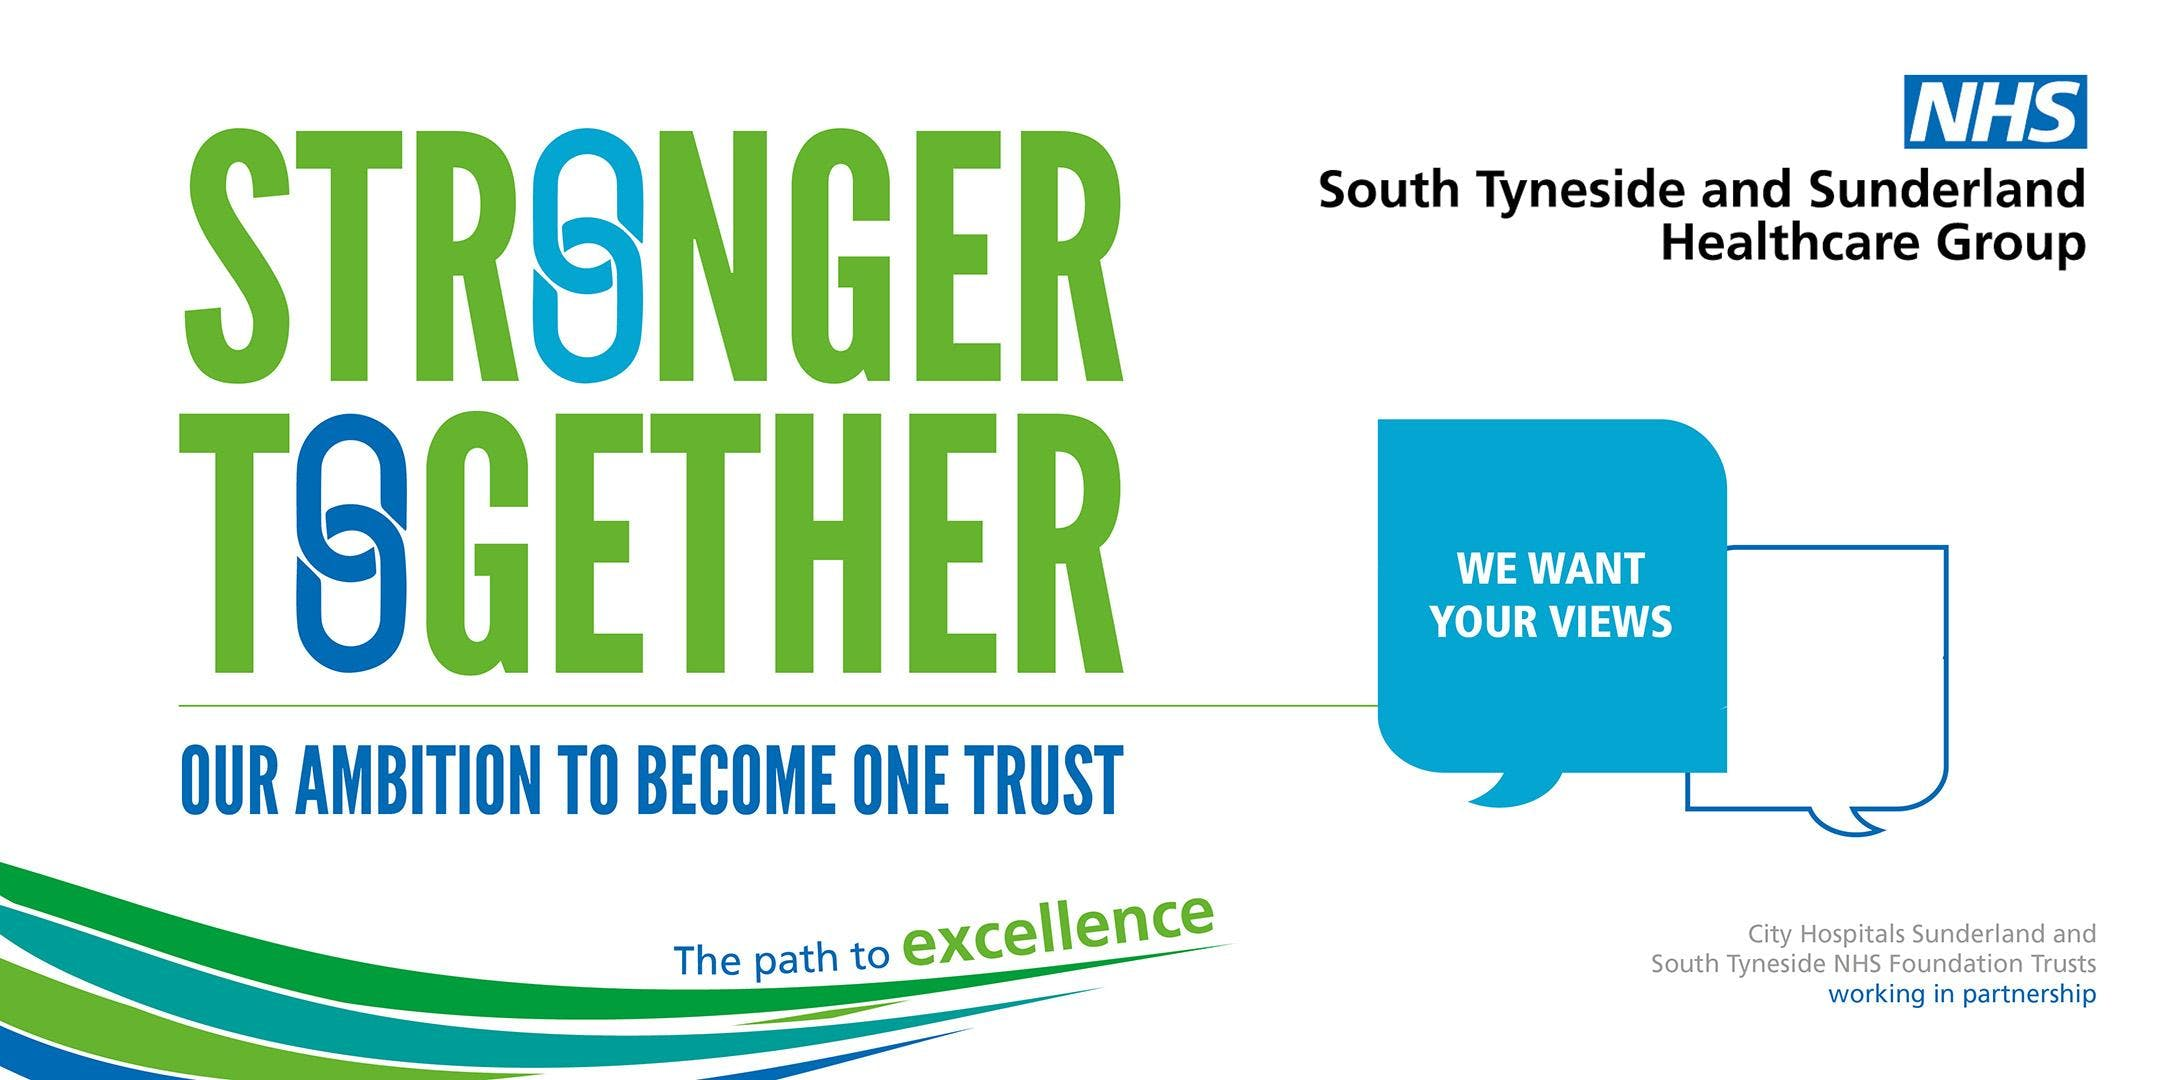 Public Engagement Events - South Tyneside